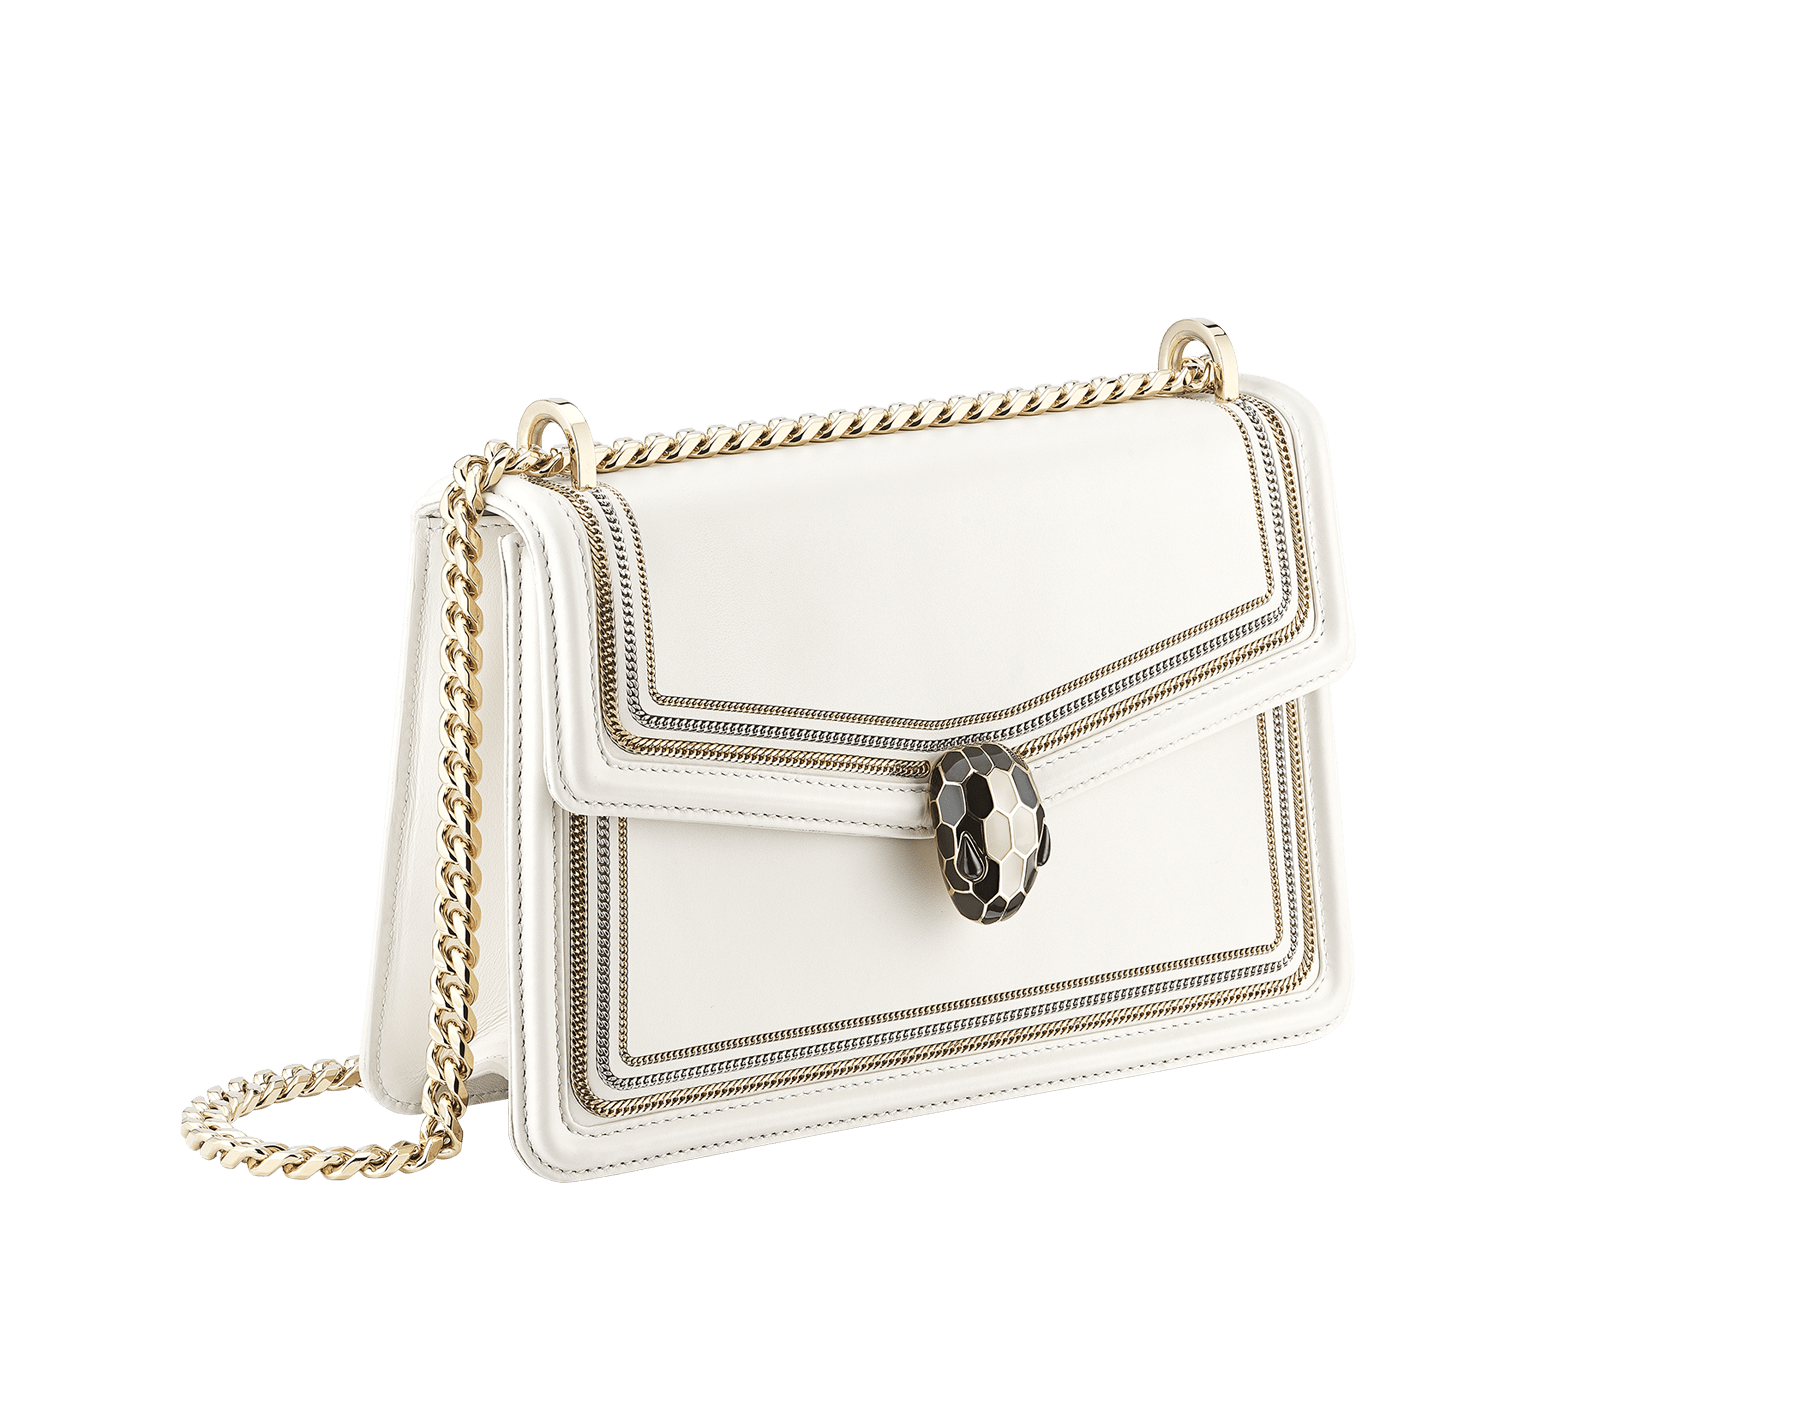 """""""Serpenti Diamond Blast"""" shoulder bag in black smooth calf leather, featuring a 3-Chain motif in light gold and palladium finishing. Iconic snakehead closure in light gold plated brass enriched with black and white enamel and black onyx eyes 922-3CFCL image 2"""